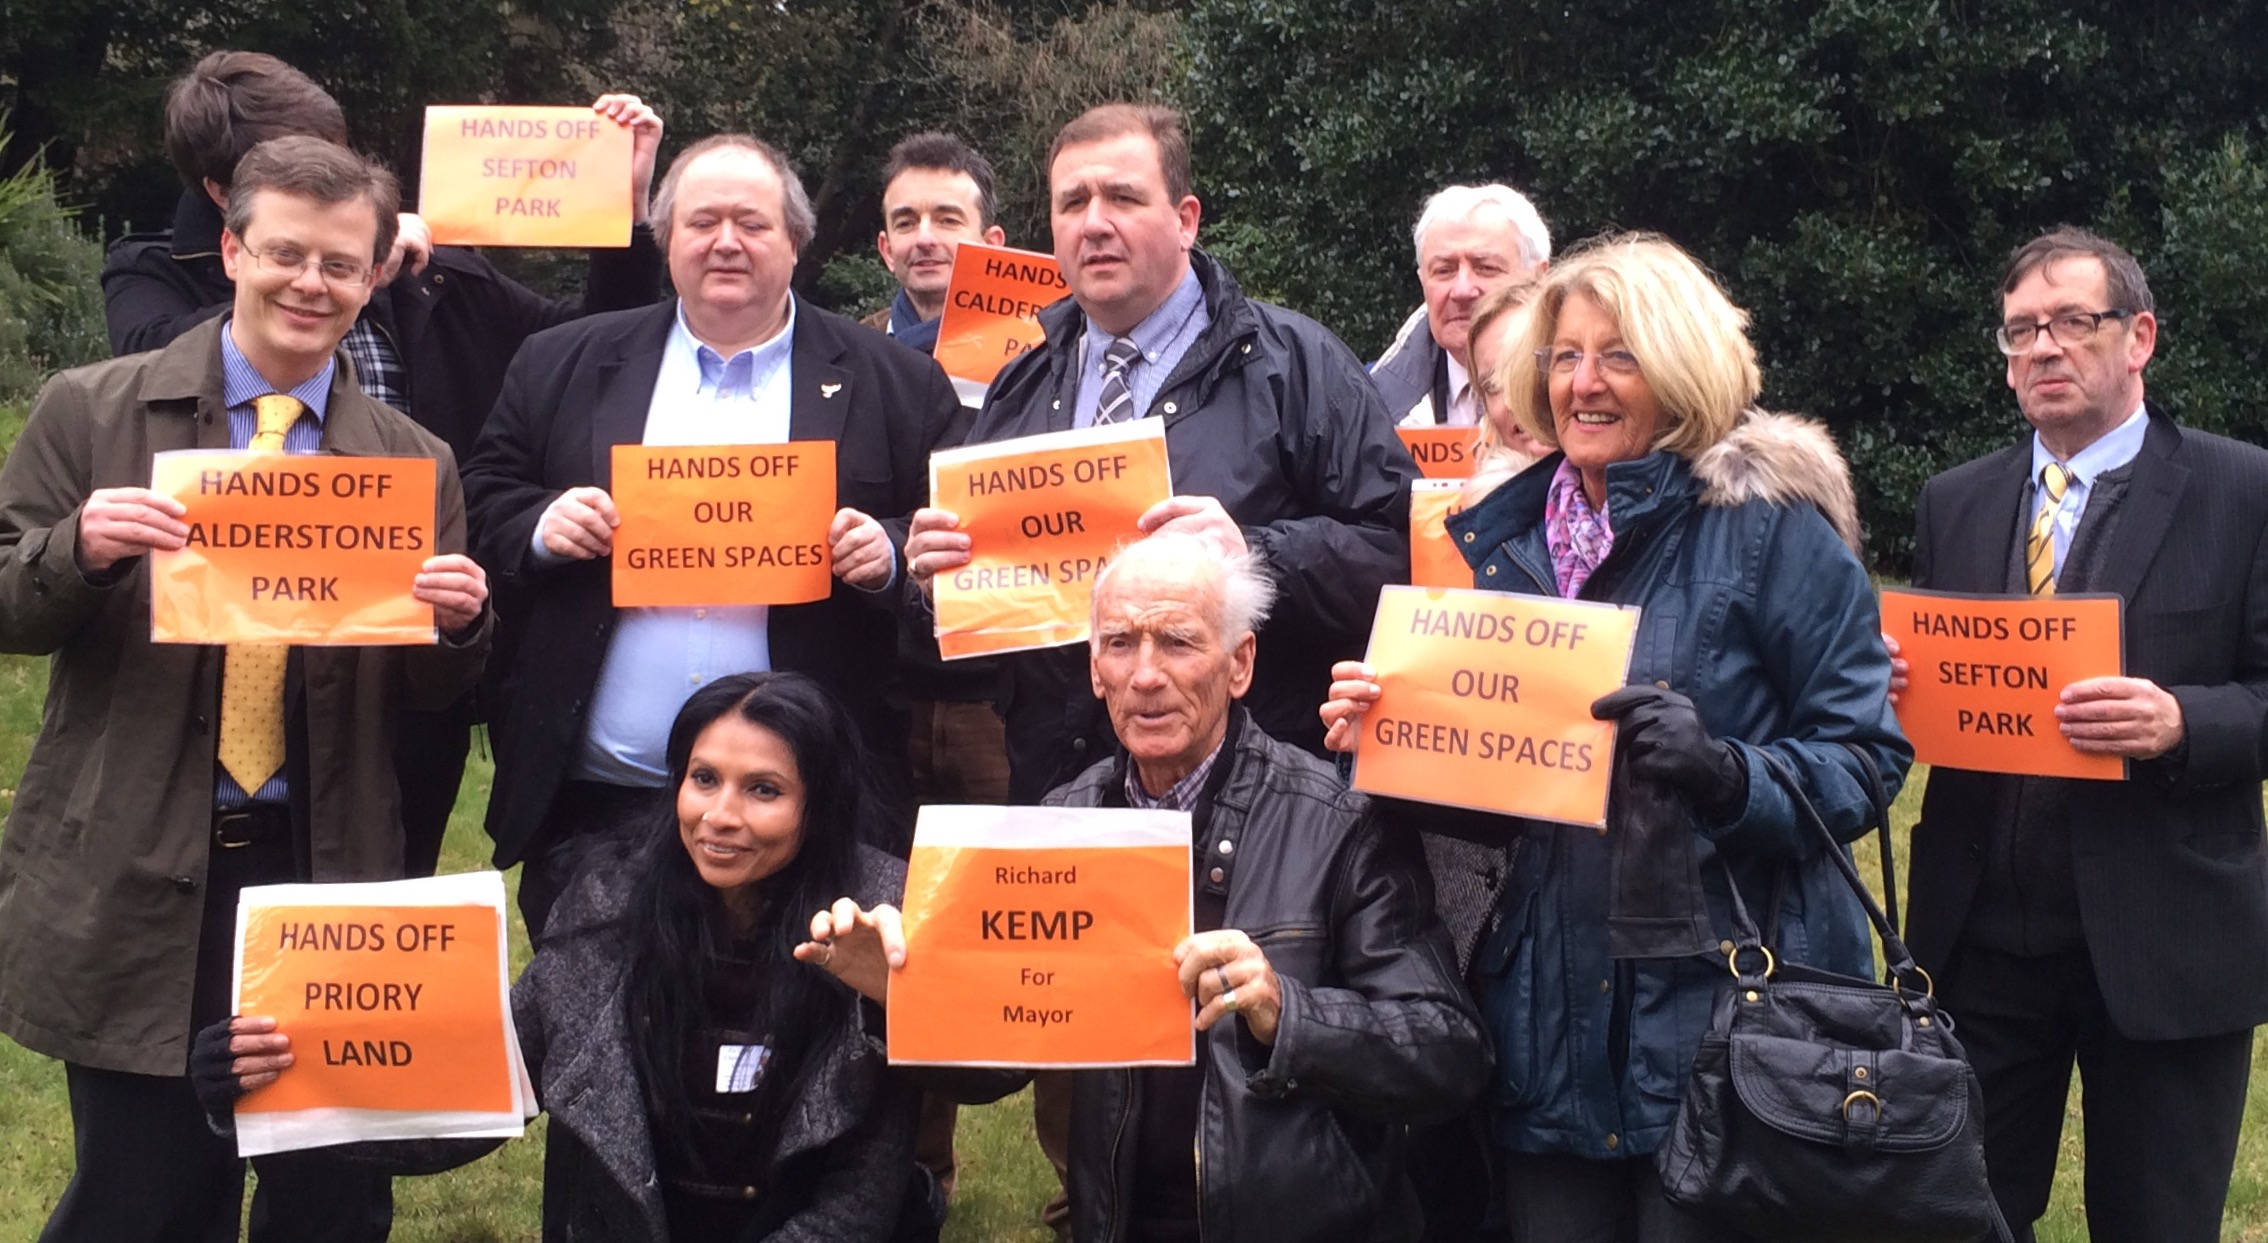 The Liberal Democrat Team for Liverpool on 5th May